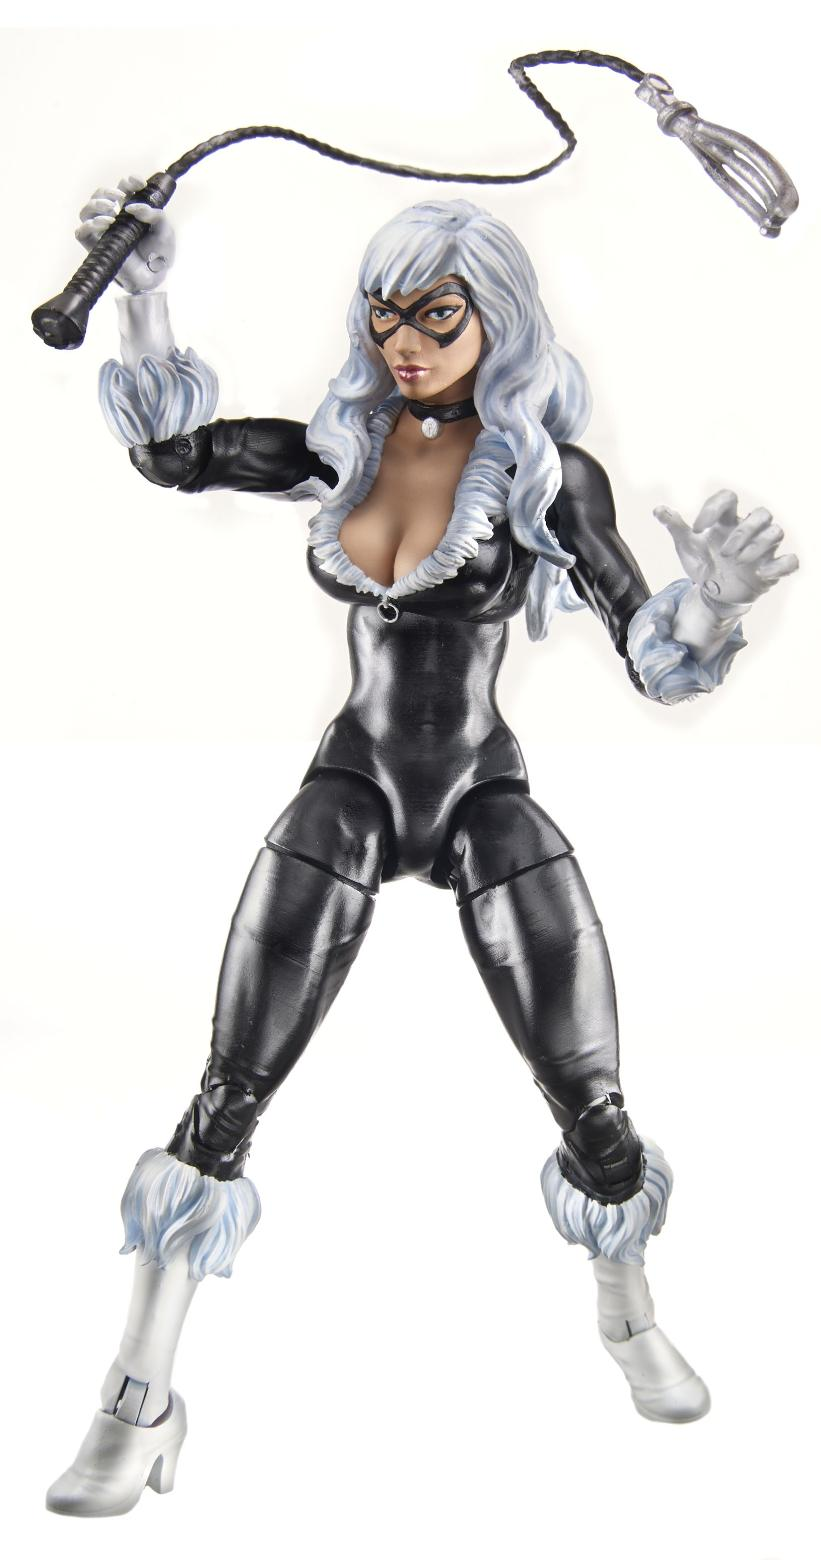 SPIDERMAN-LEGENDS-6inch-INFINITE-SERIES-BlackCat-A6661